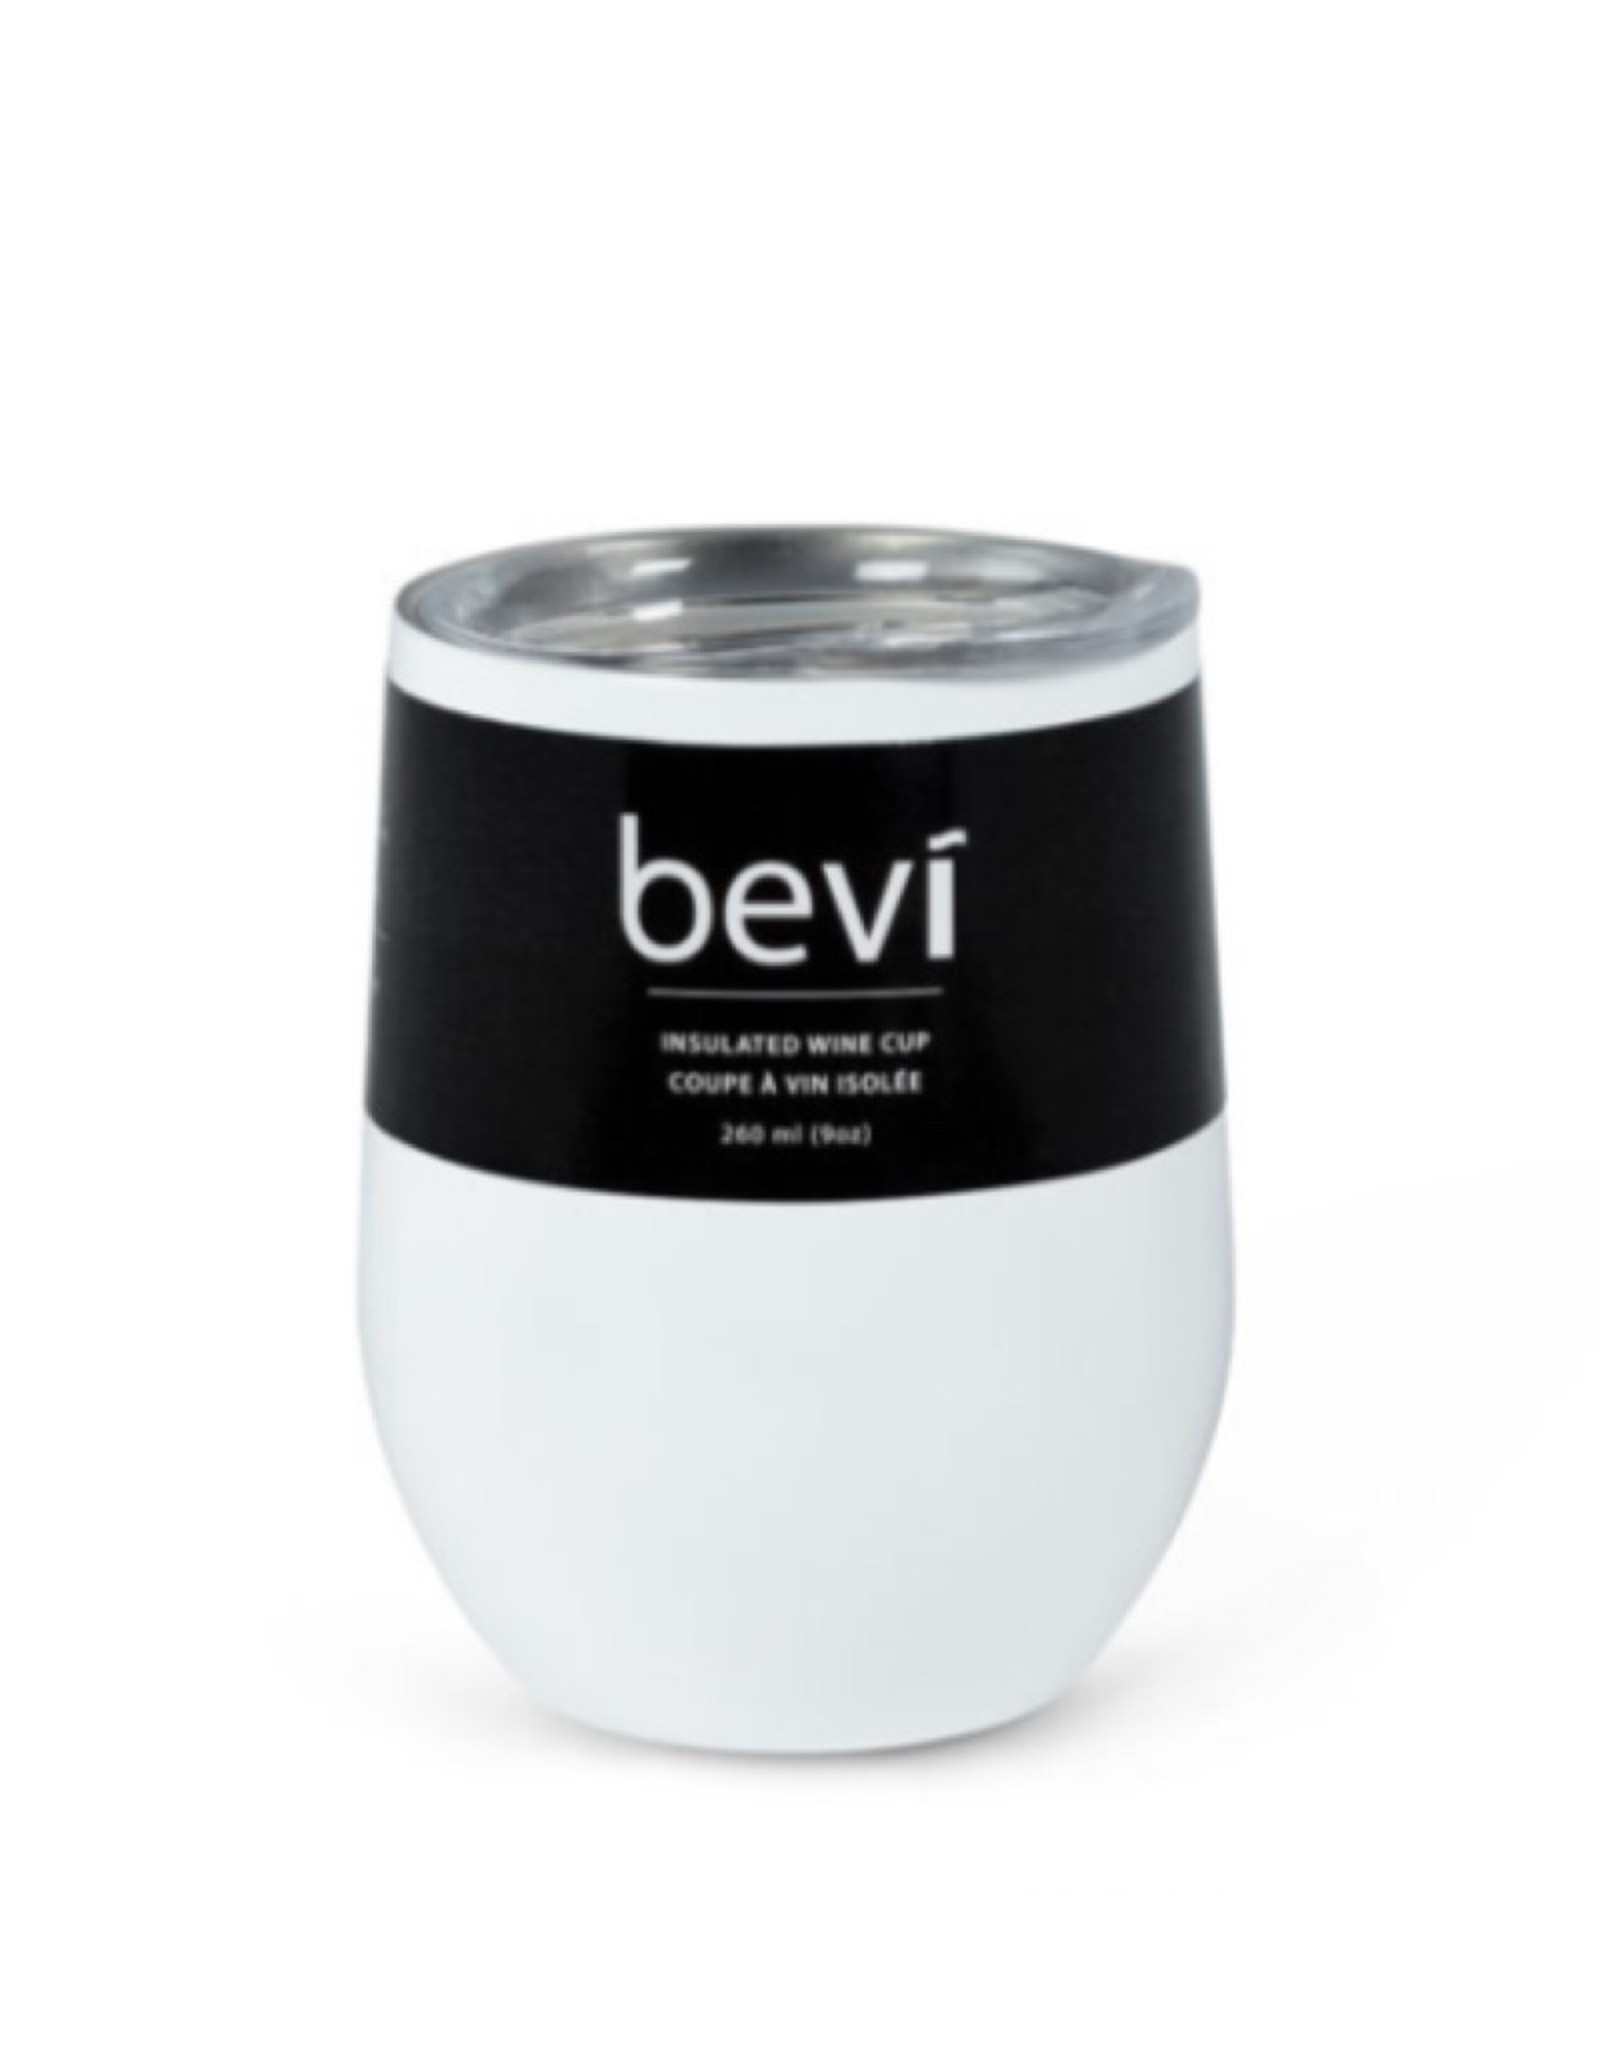 27-BEVI-SG-WHT White Insulated Wine Tumbler 12oz